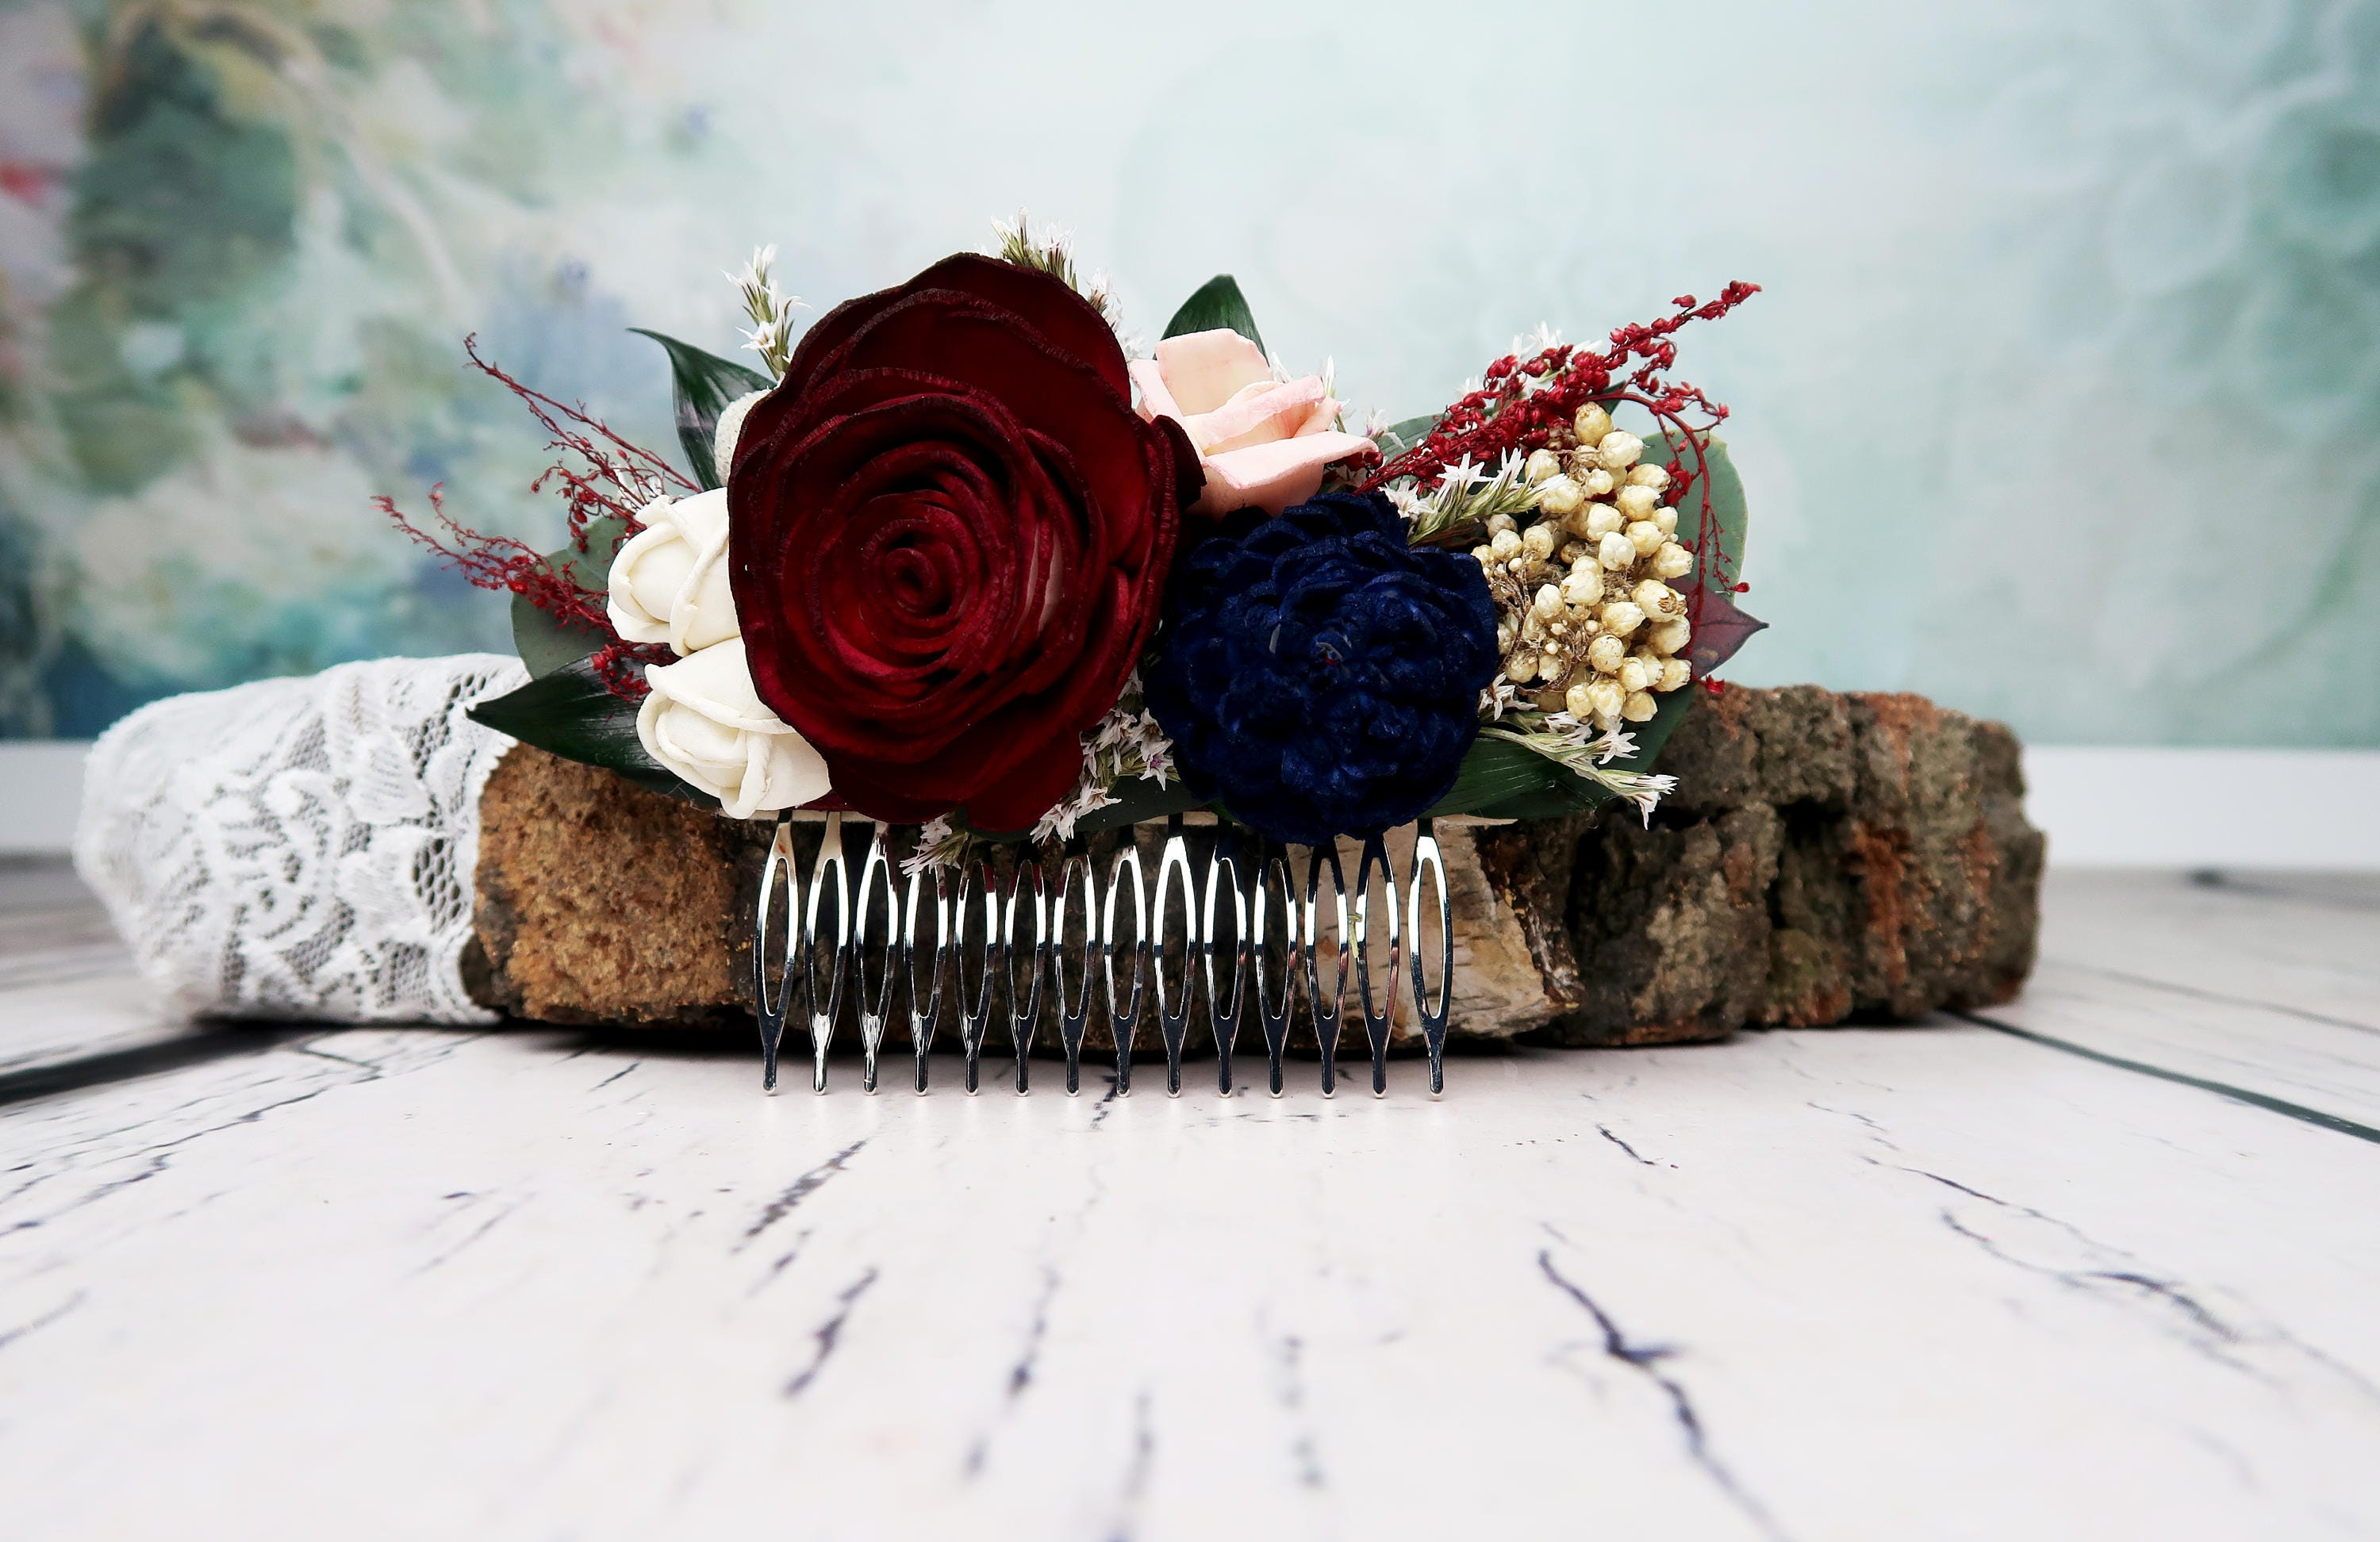 Burgundy rose bridal hair comb blush pink navy blue ivory sola burgundy rose bridal hair comb blush pink navy blue ivory sola flowers preserved eucalyptus ruscus brunia berry dried flowers wedding flower izmirmasajfo